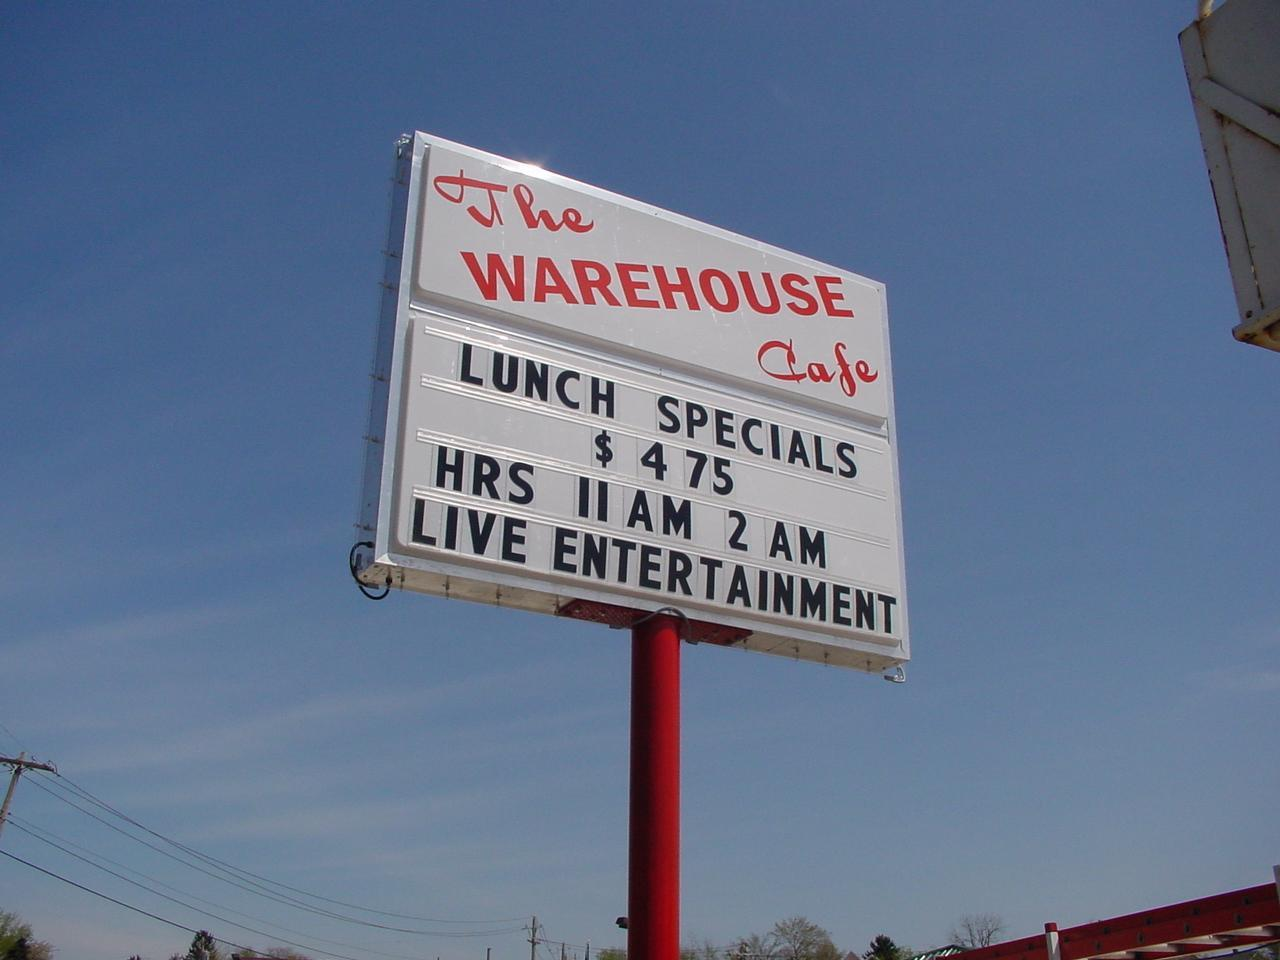 The Warehouse Cafe